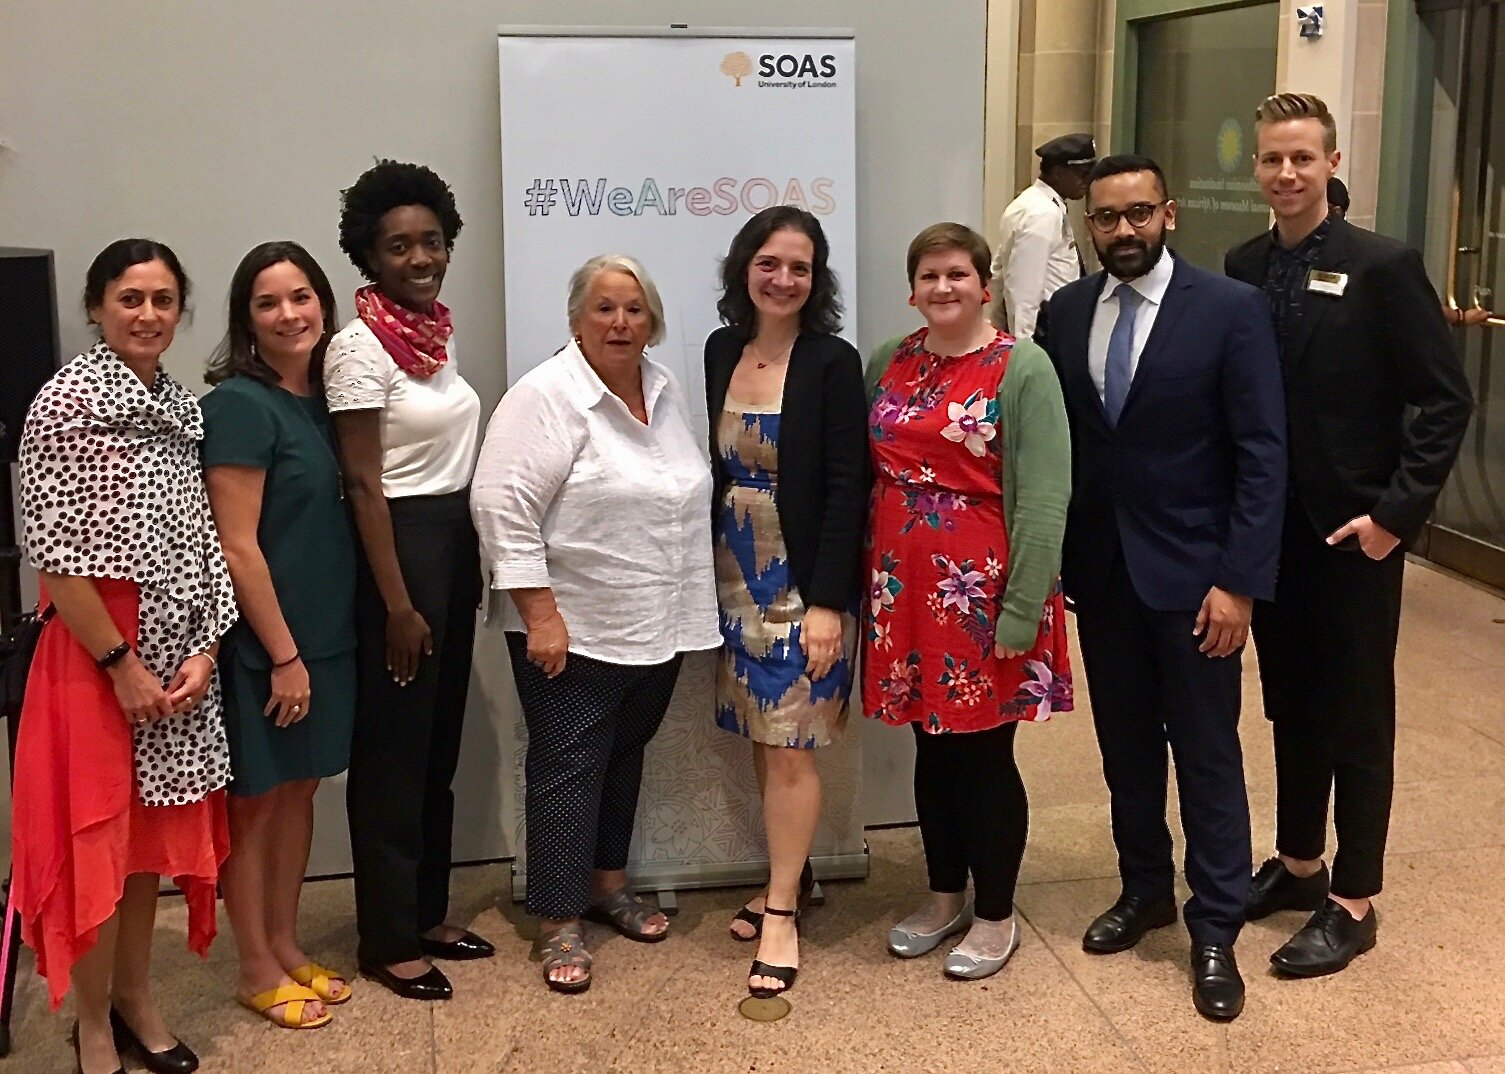 AFSOAS Board members Whitney Purdum, Jessica Adomako, Elaine Loiello, Kate Barron-Alicante and Greg Buie with Angelica Baschiera - Manager, Center of African Studies (left), Sarah Goodyear (3rd from right) and Nizam Uddin - SOAS Trustee (2nd from right)